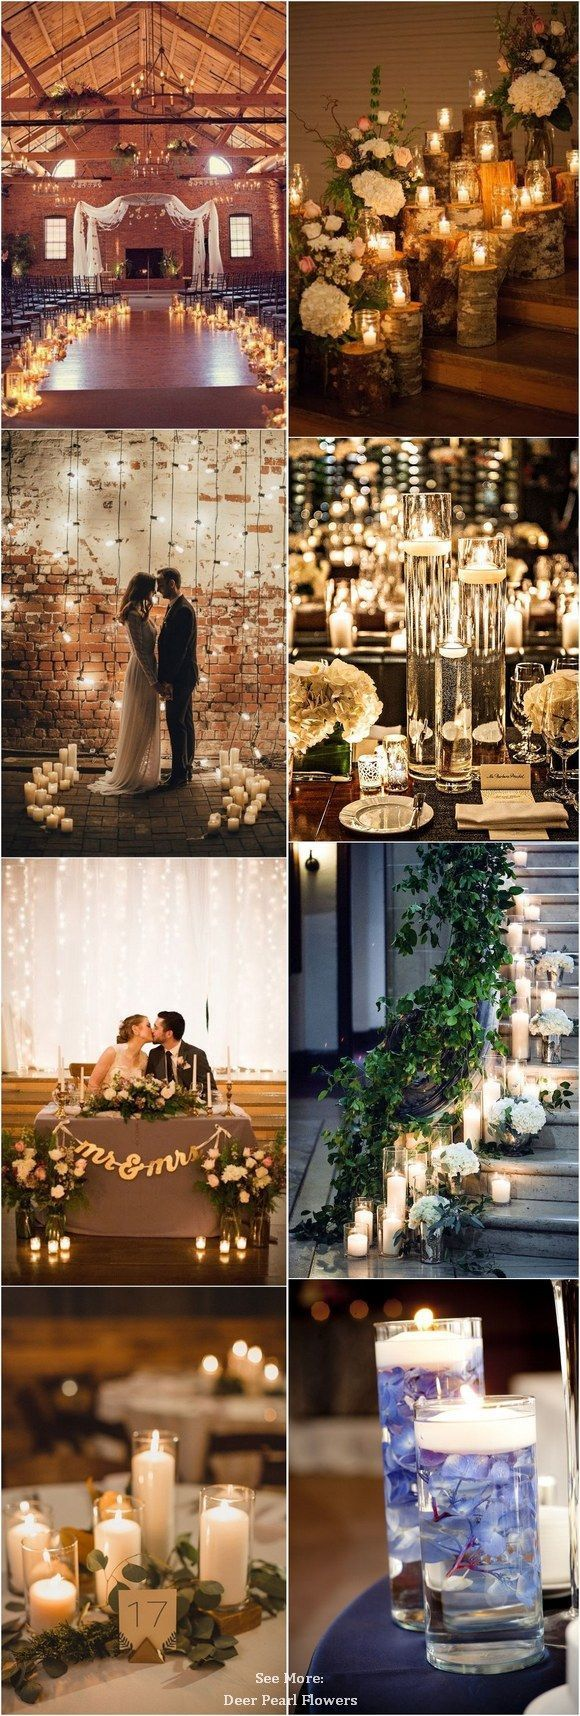 Wedding quotes rustic romantic wedding candle decor ideas www wedding quotes rustic romantic wedding candle decor ideas deerpearlflow junglespirit Choice Image